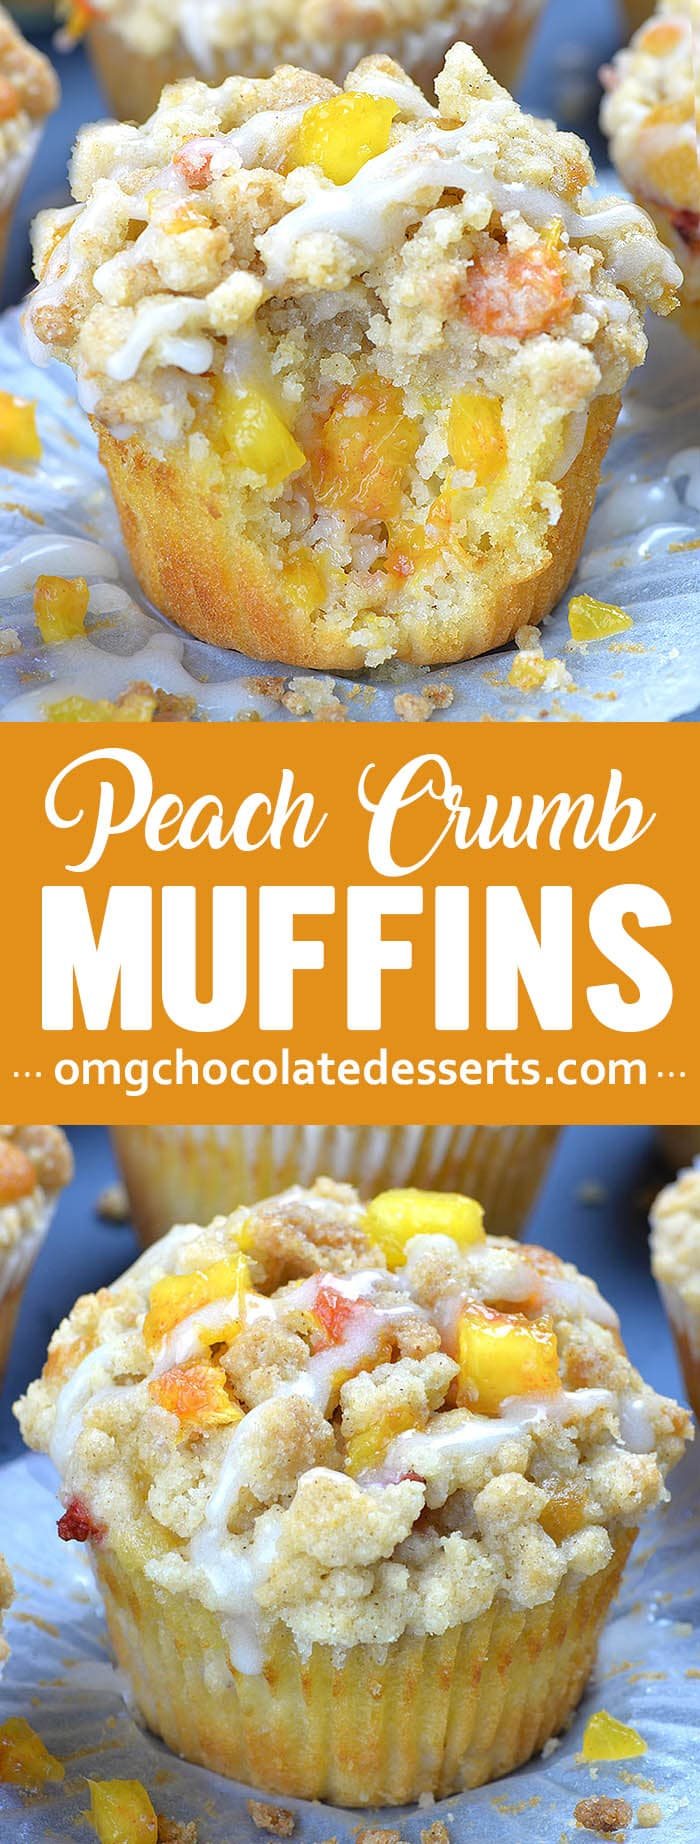 Peach Crumb Muffins are fluffy homemade muffins perfect for breakfasts and snacks. Moist and flavorful muffins loaded with fresh summery peaches, finished with sweet, buttery, cinnamon streusel crumb topping are the best muffin recipe ever!